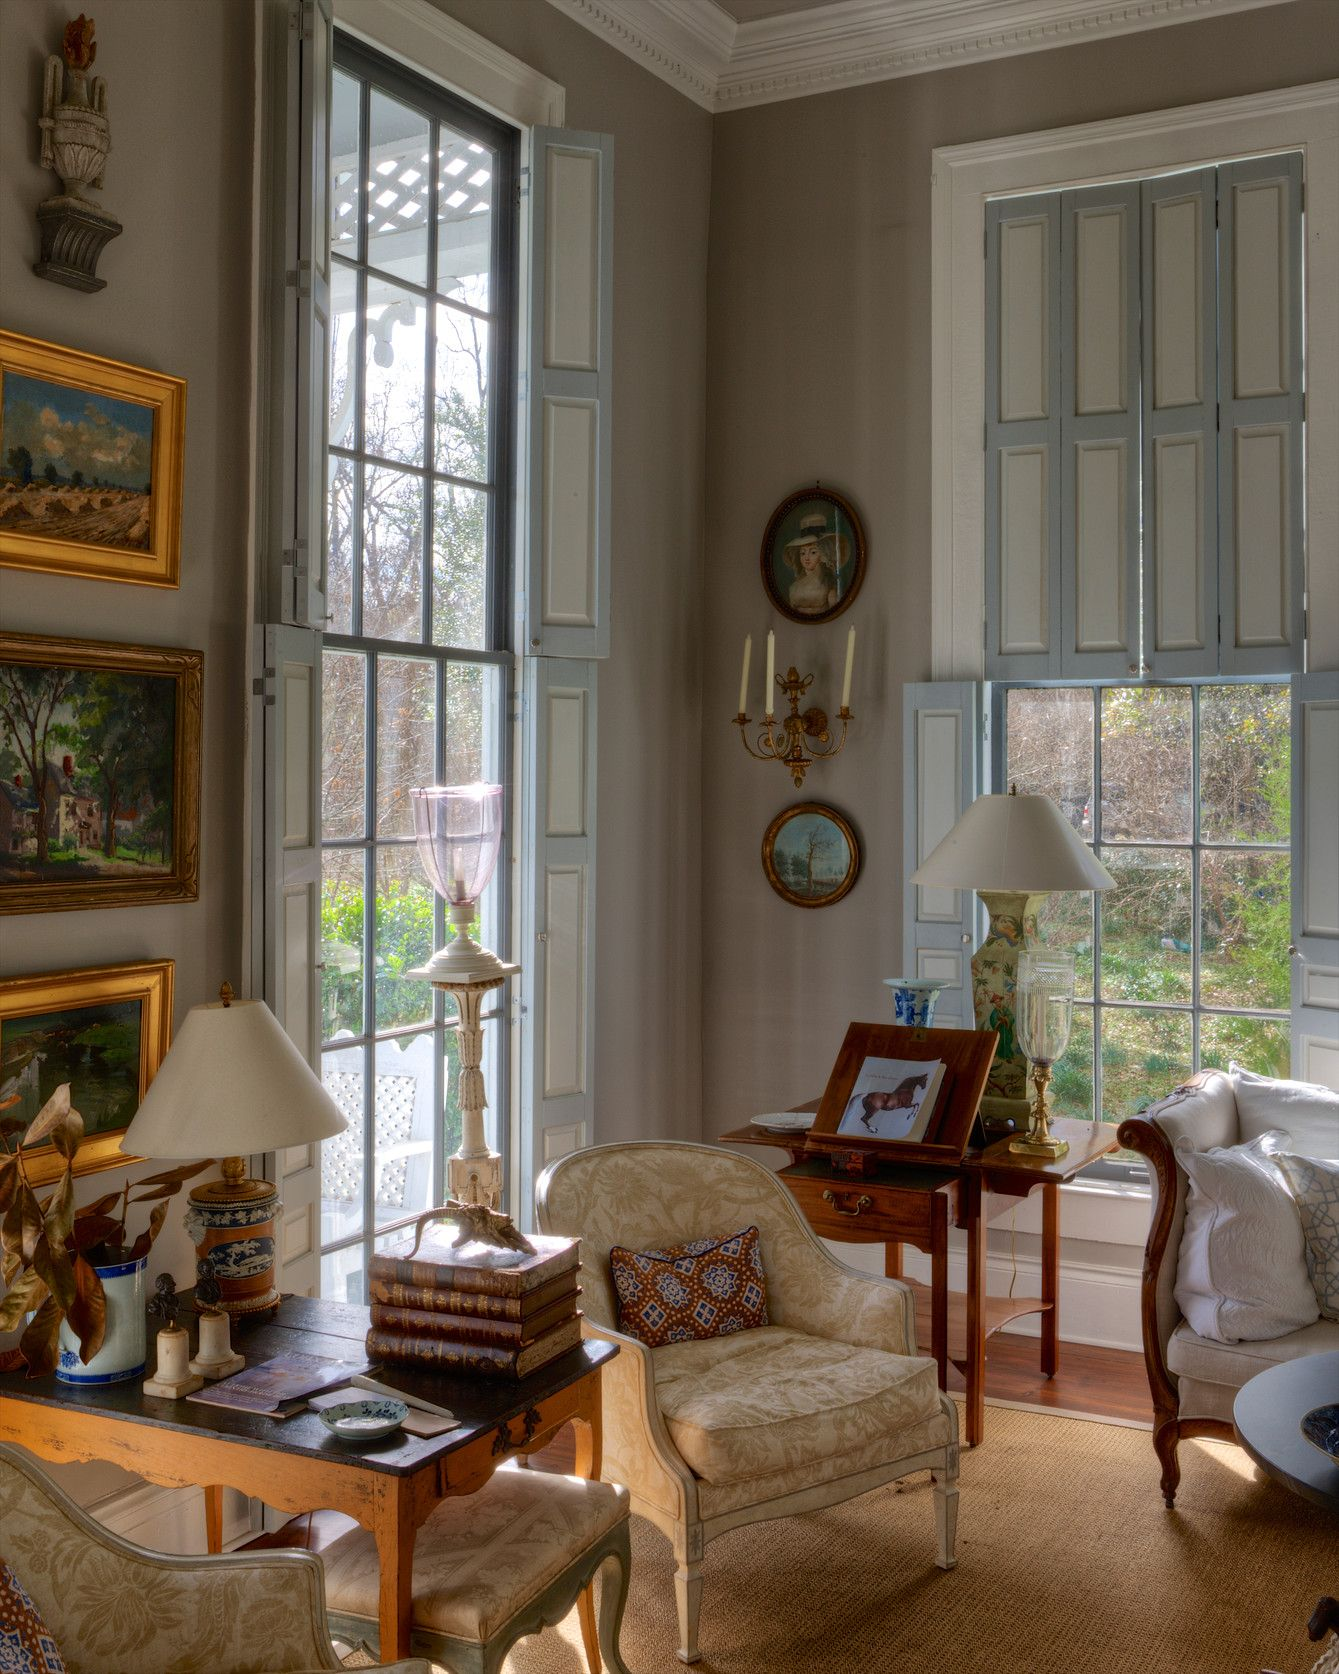 Furlow gatewood american designer of country interiors in for American window design